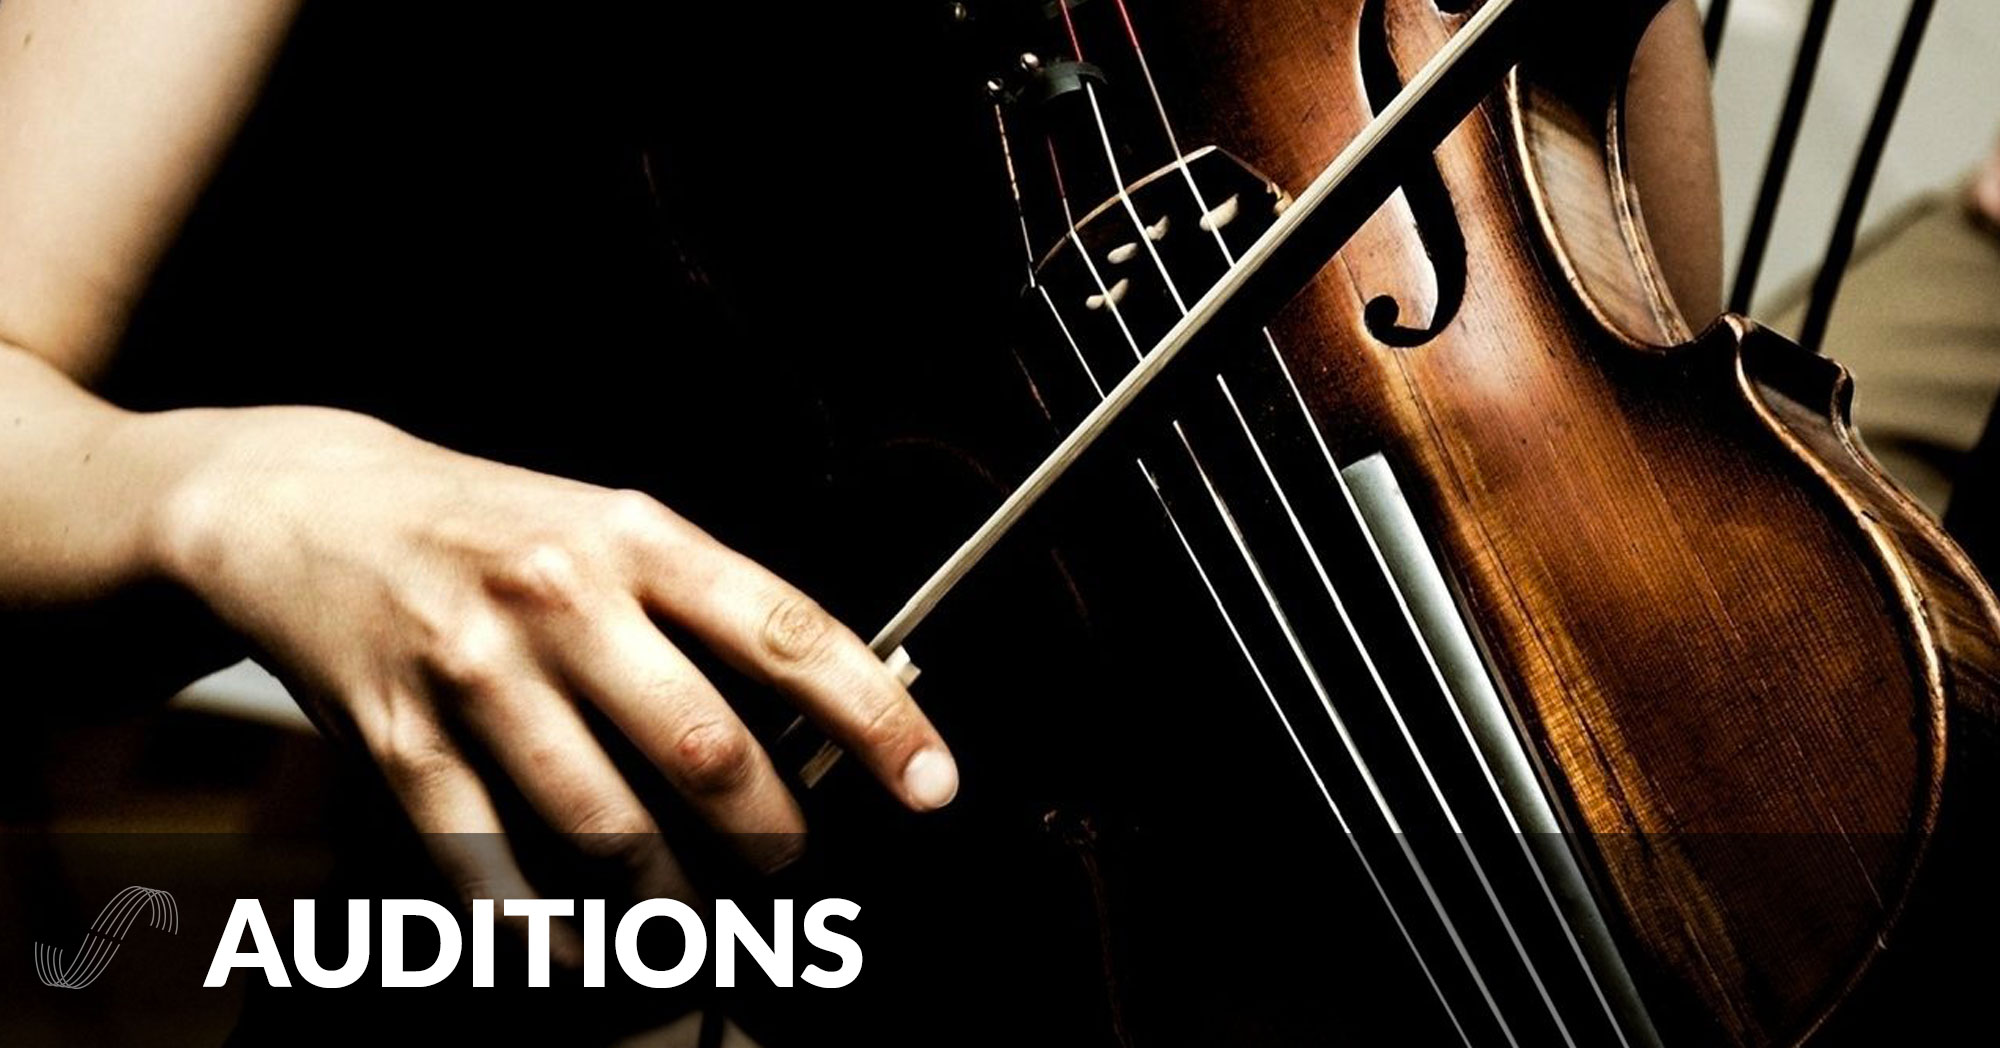 Stockton Symphony - Auditions